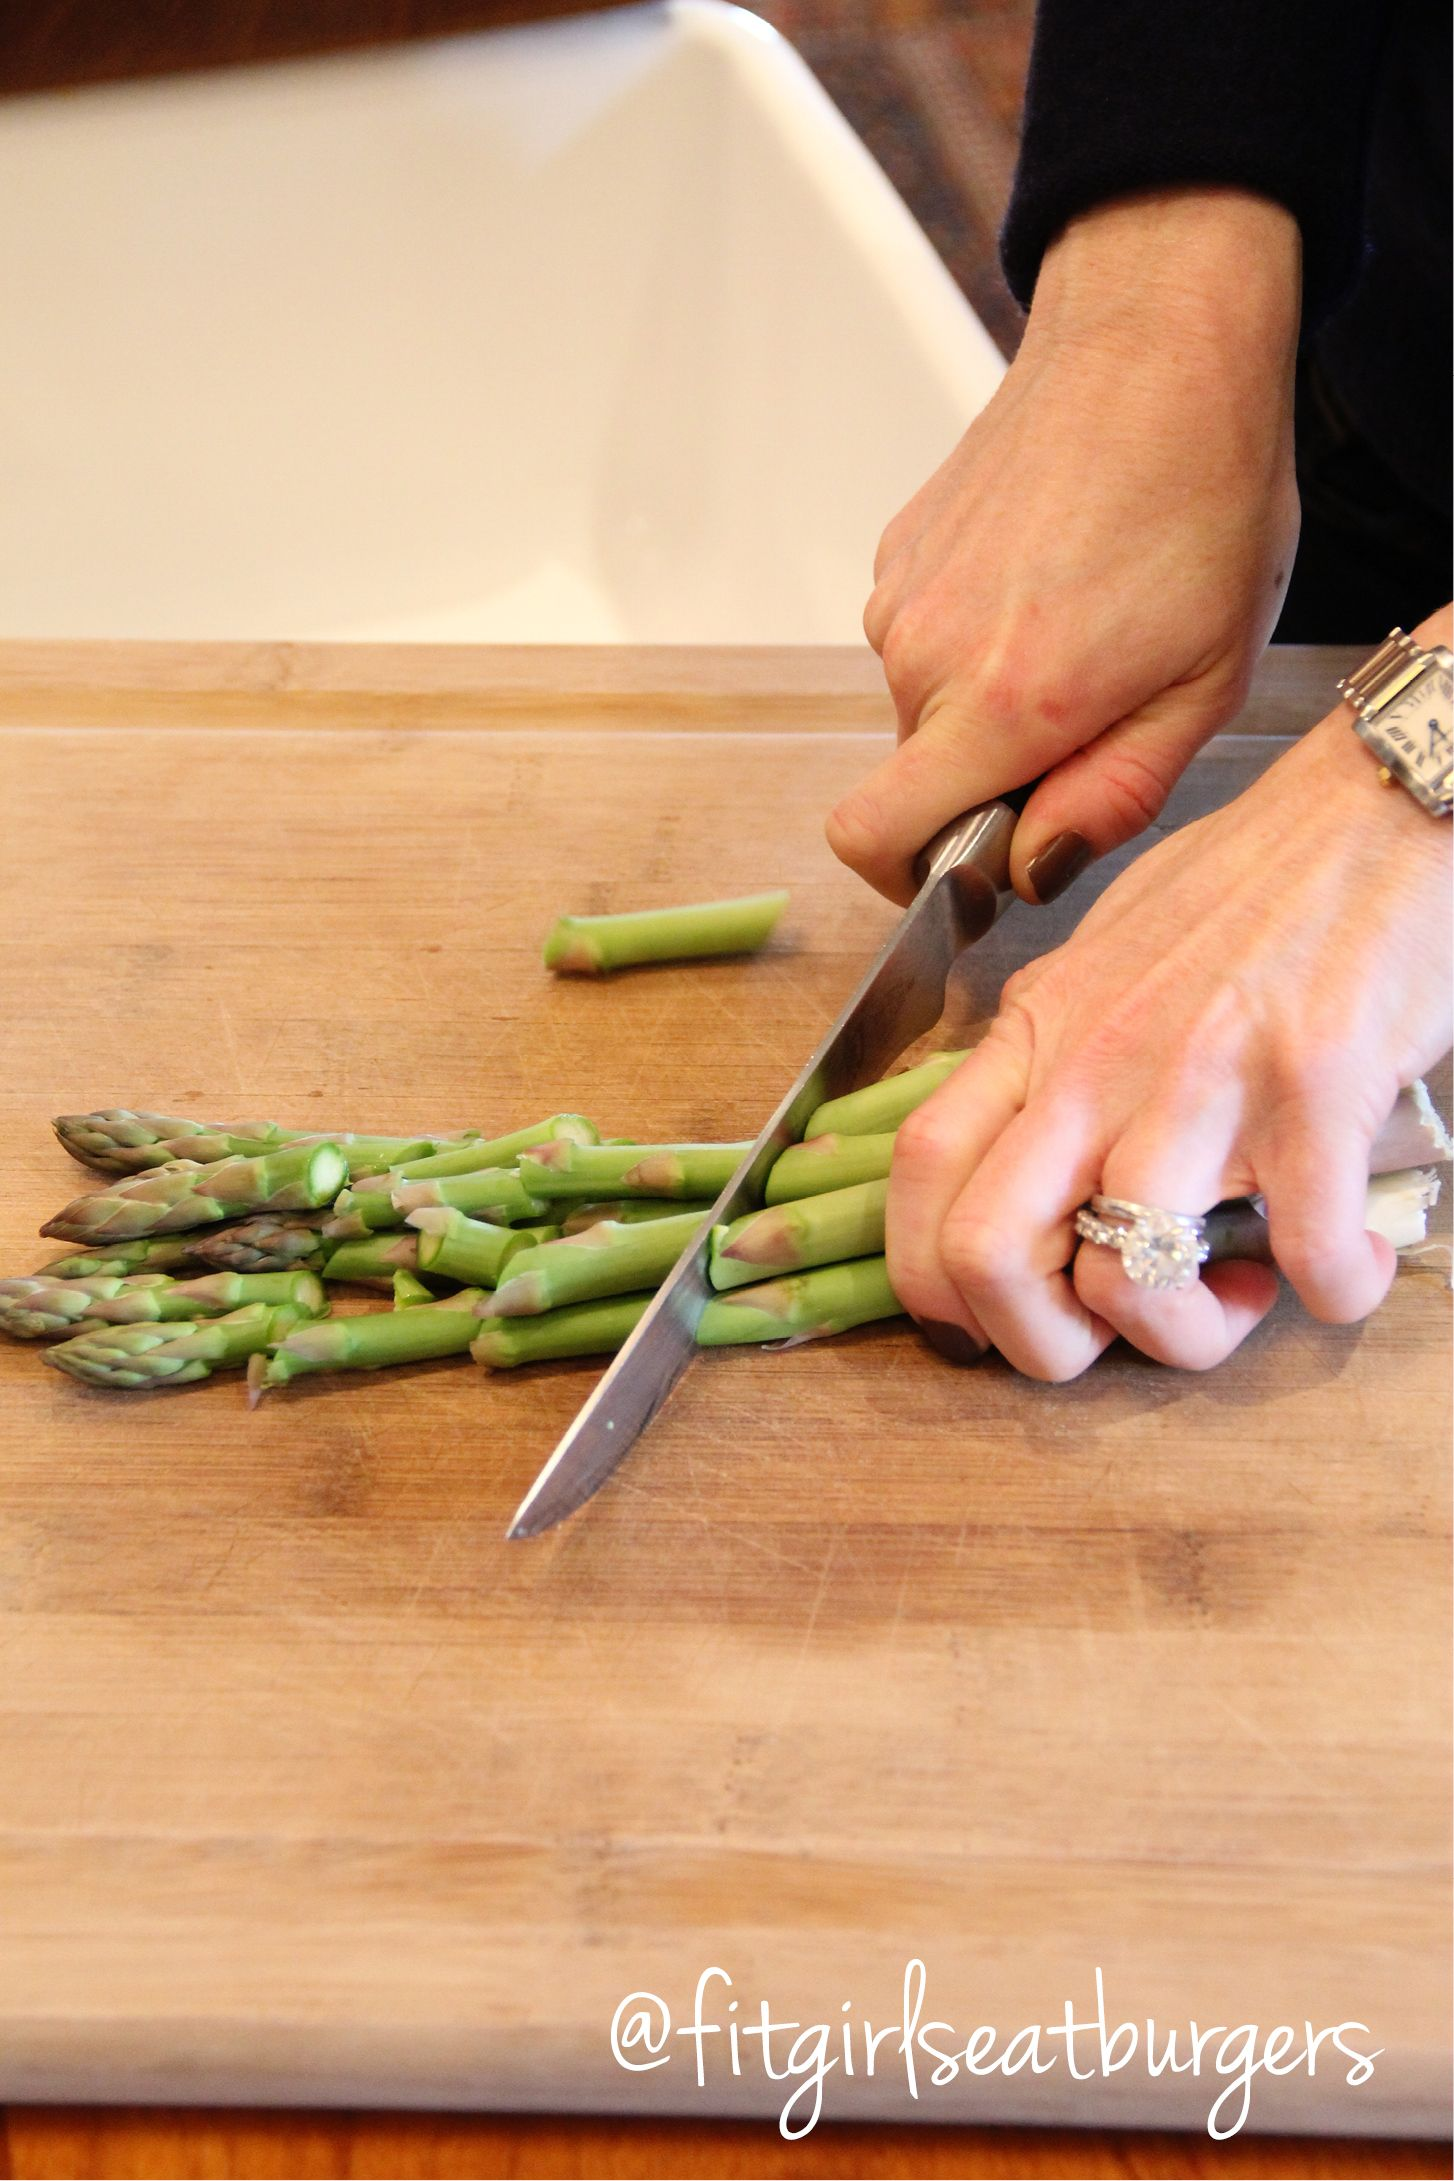 Asparagus is sometimes a forgotten vegetable that is so easy to cook. Keep it whole and steam for a side. Chop it and sautee lightly in olive oil. Steam lightly but keep it al dente and throw it on top of a salad.